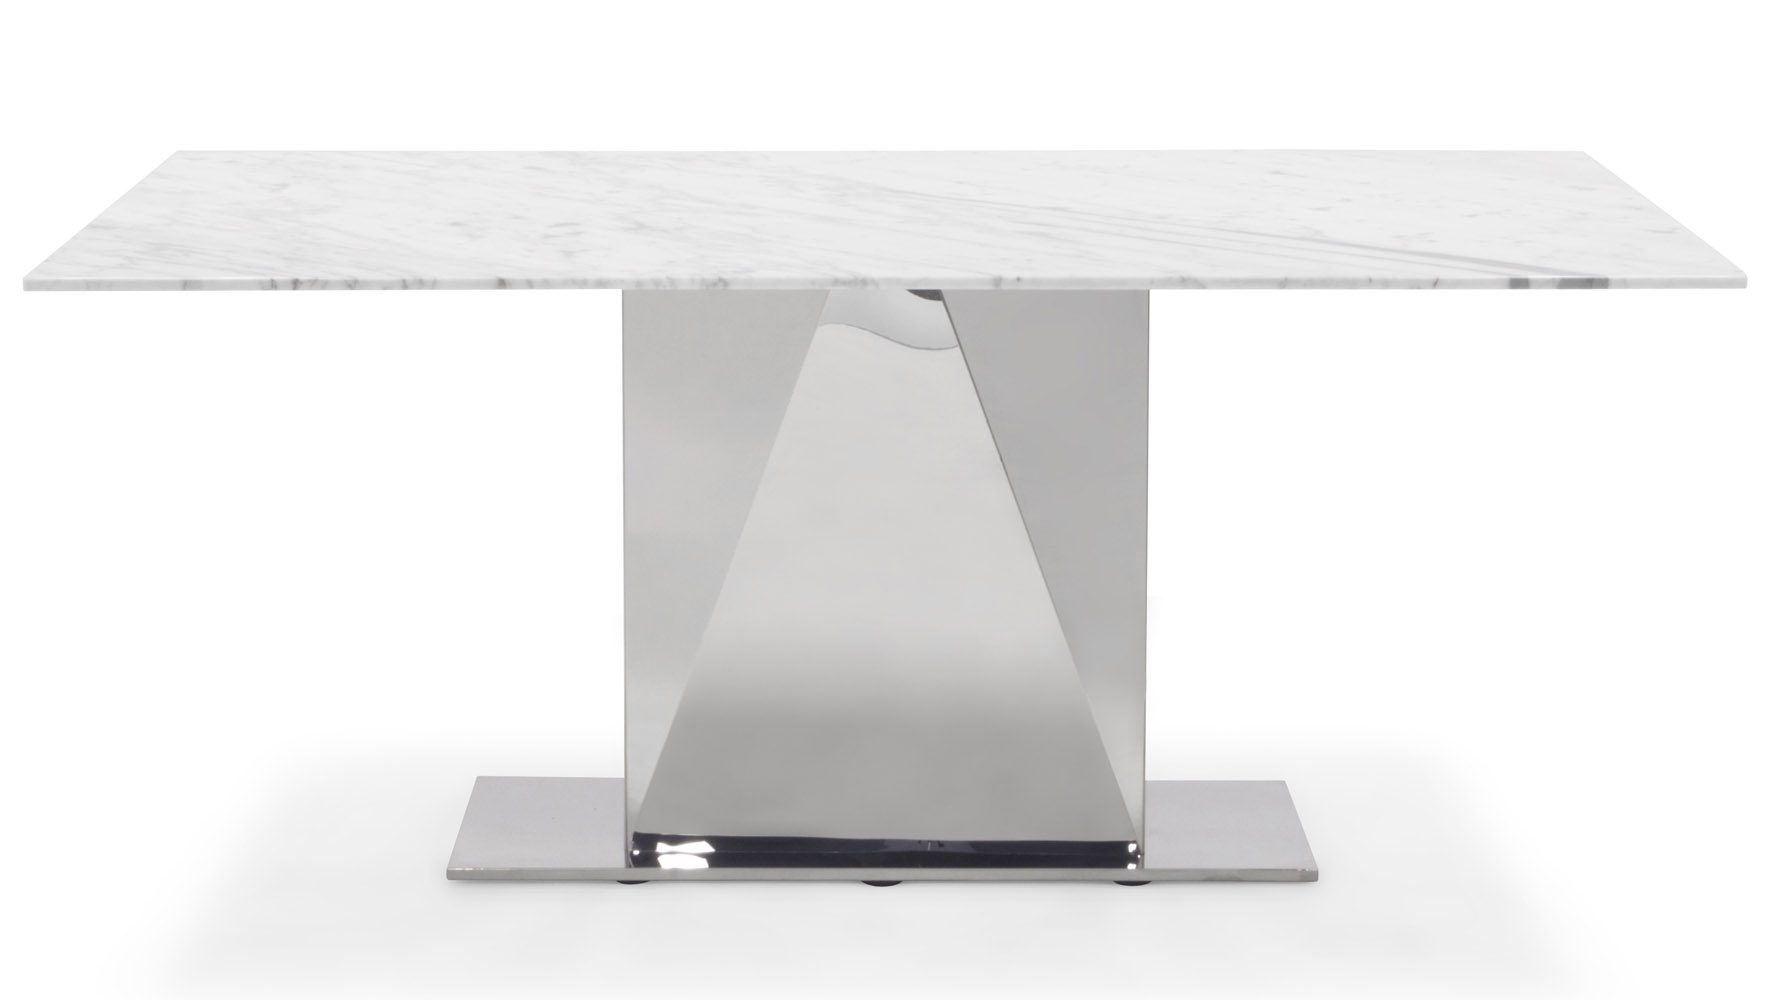 Bianco 71 Inch Marble Dining Table with Polished Stainless  : bianco chrome carrara marble dining table 5 from www.zurifurniture.com size 1778 x 1000 jpeg 95kB